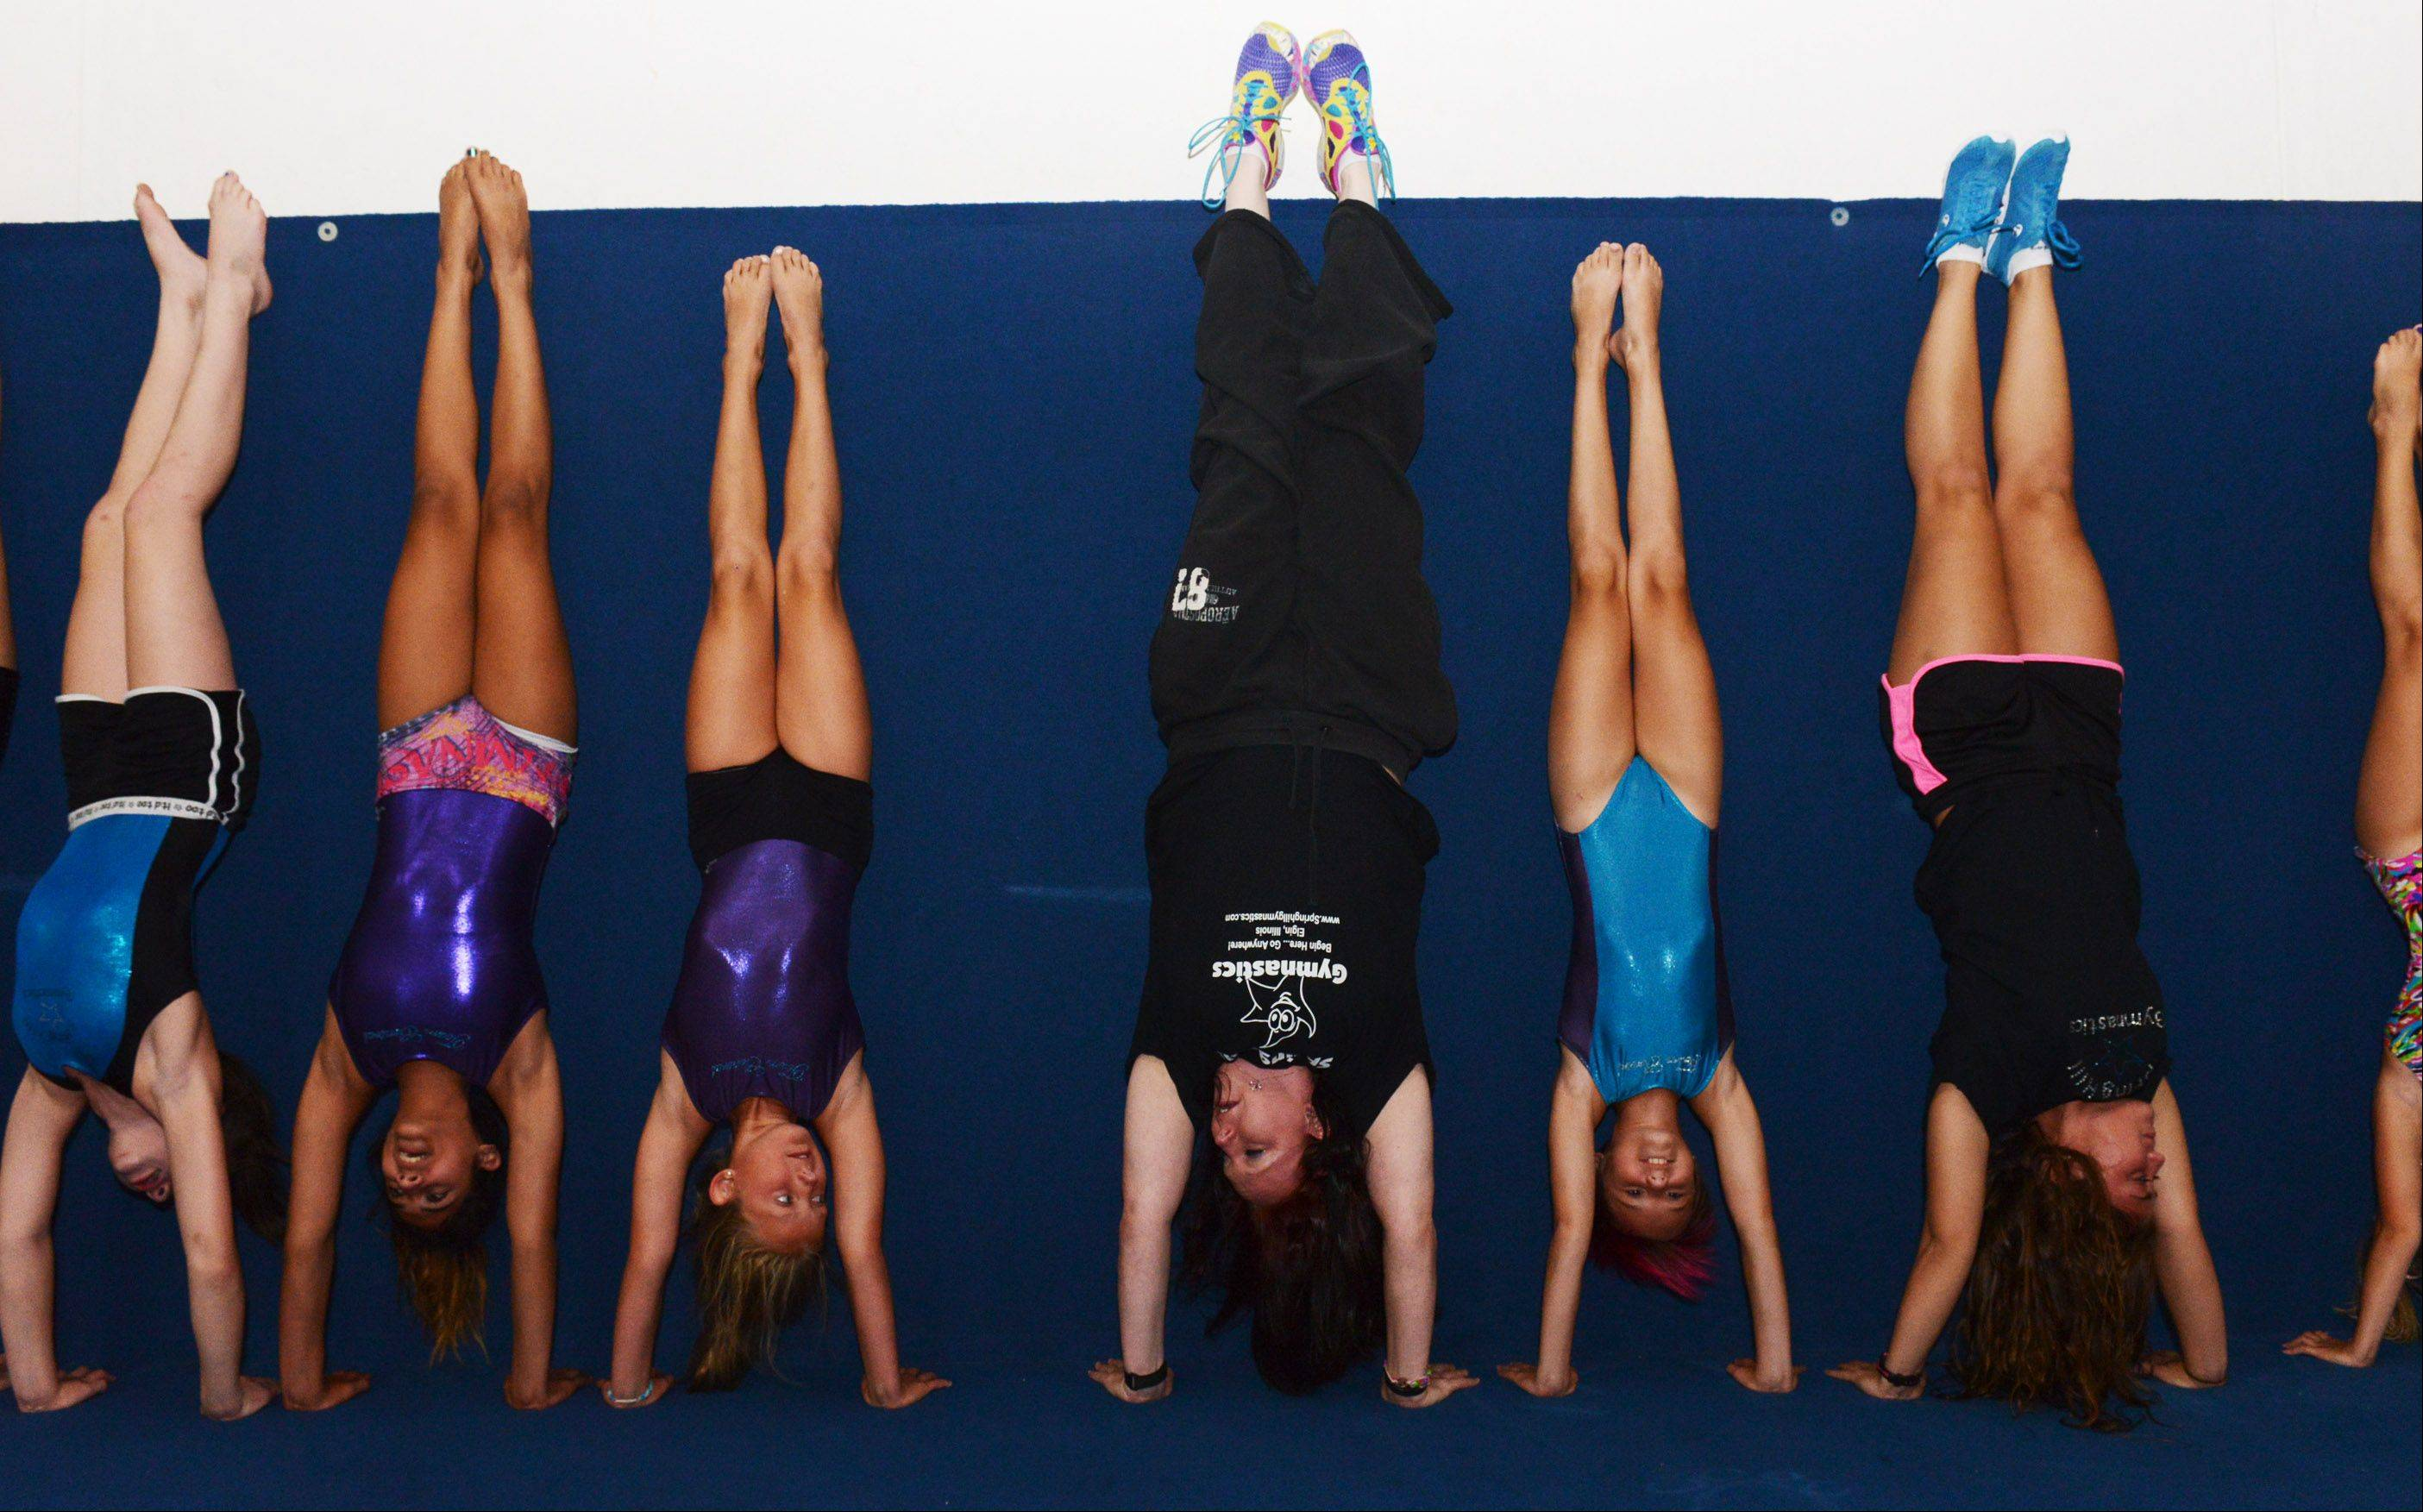 Rebekah Gillette leads the Greater Illinois Junior Olympics team in handstands at Spring Hill Gymnastics in Elgin.